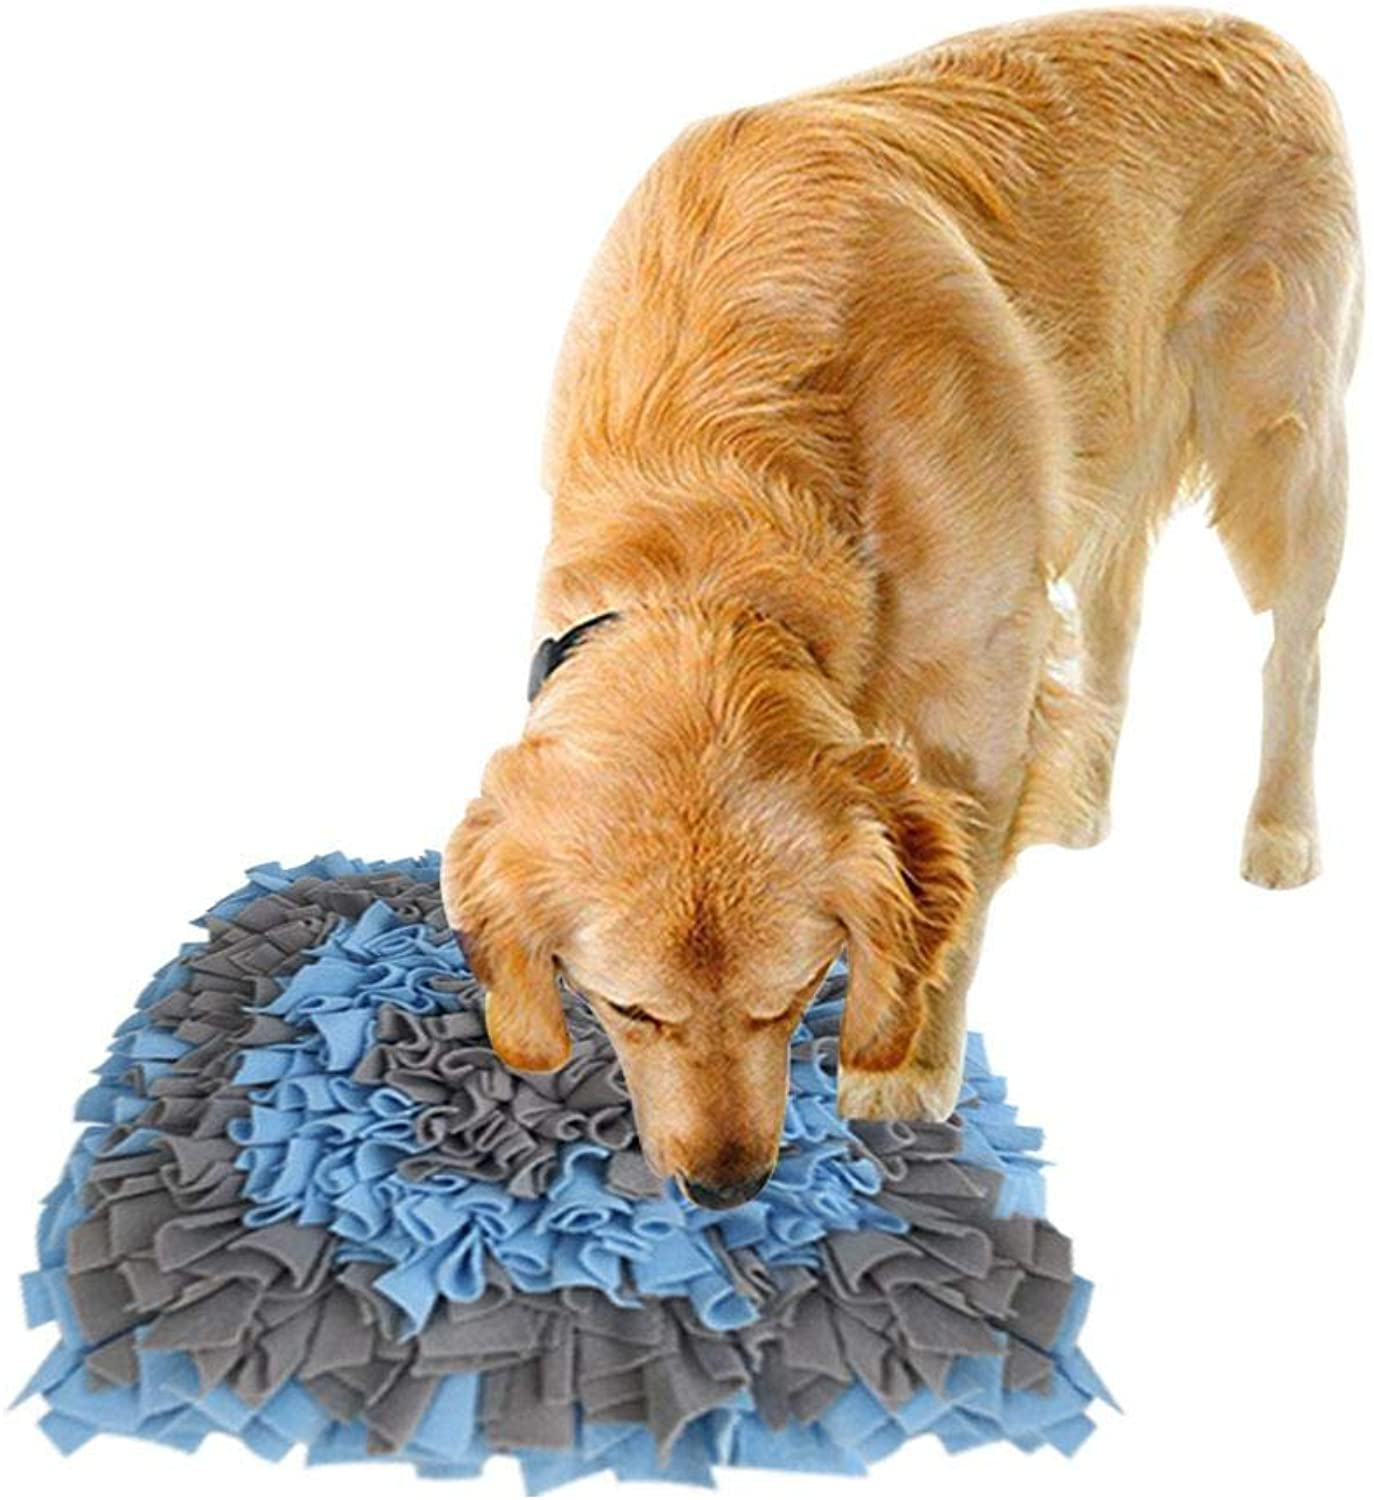 Dog Snuffle Mat Portable Feeding Mat MultiPurpose use Pet Puzzle Toy Sniffing Training Pad Activity Blanket Feeding Mat for Dog Release Stress with AntiSlip Blanket Dog Training Mats17.7217.72in